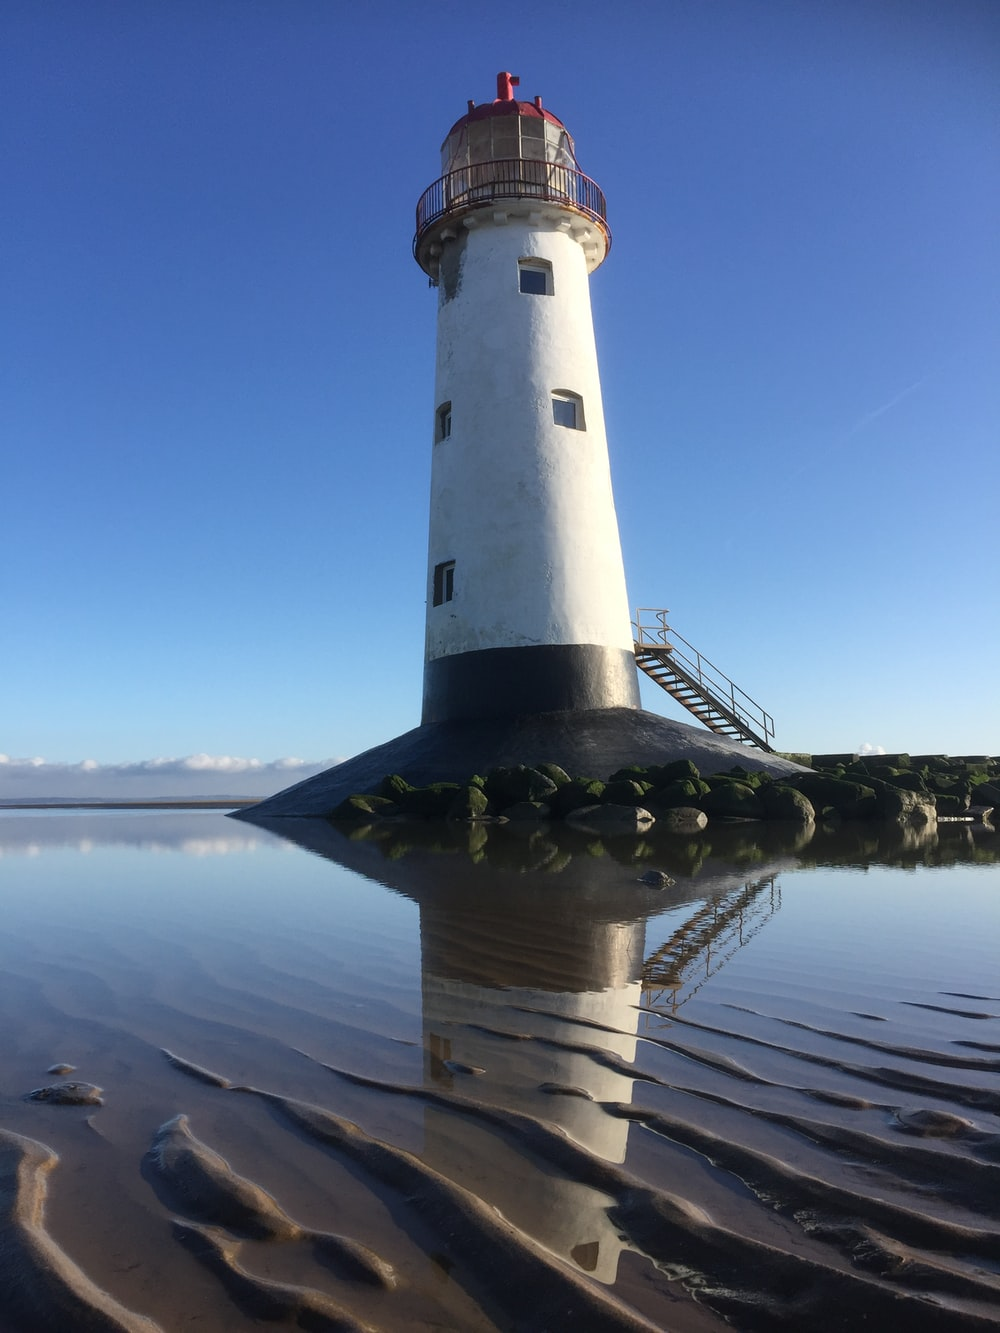 white and black lighthouse near body of water during daytime